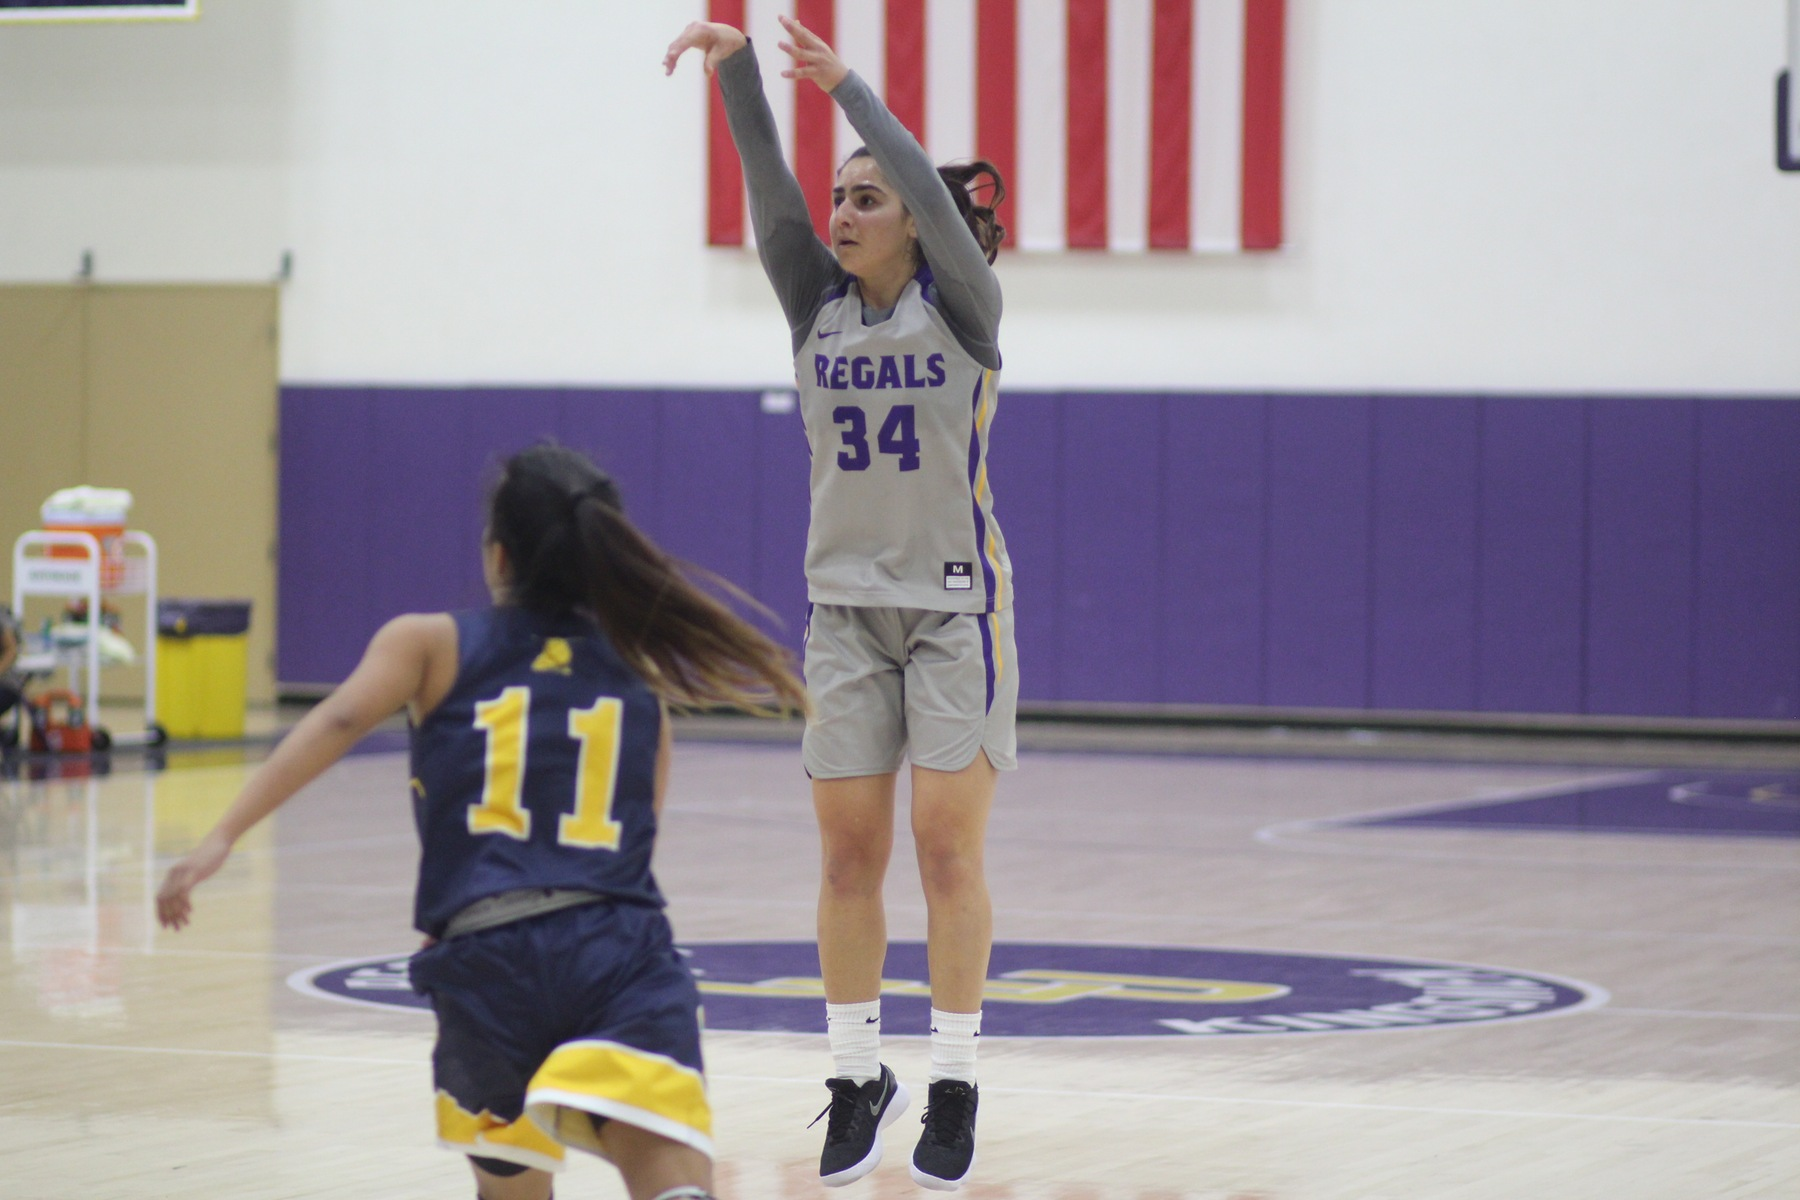 Regals' Late Three-Pointers Seal Win